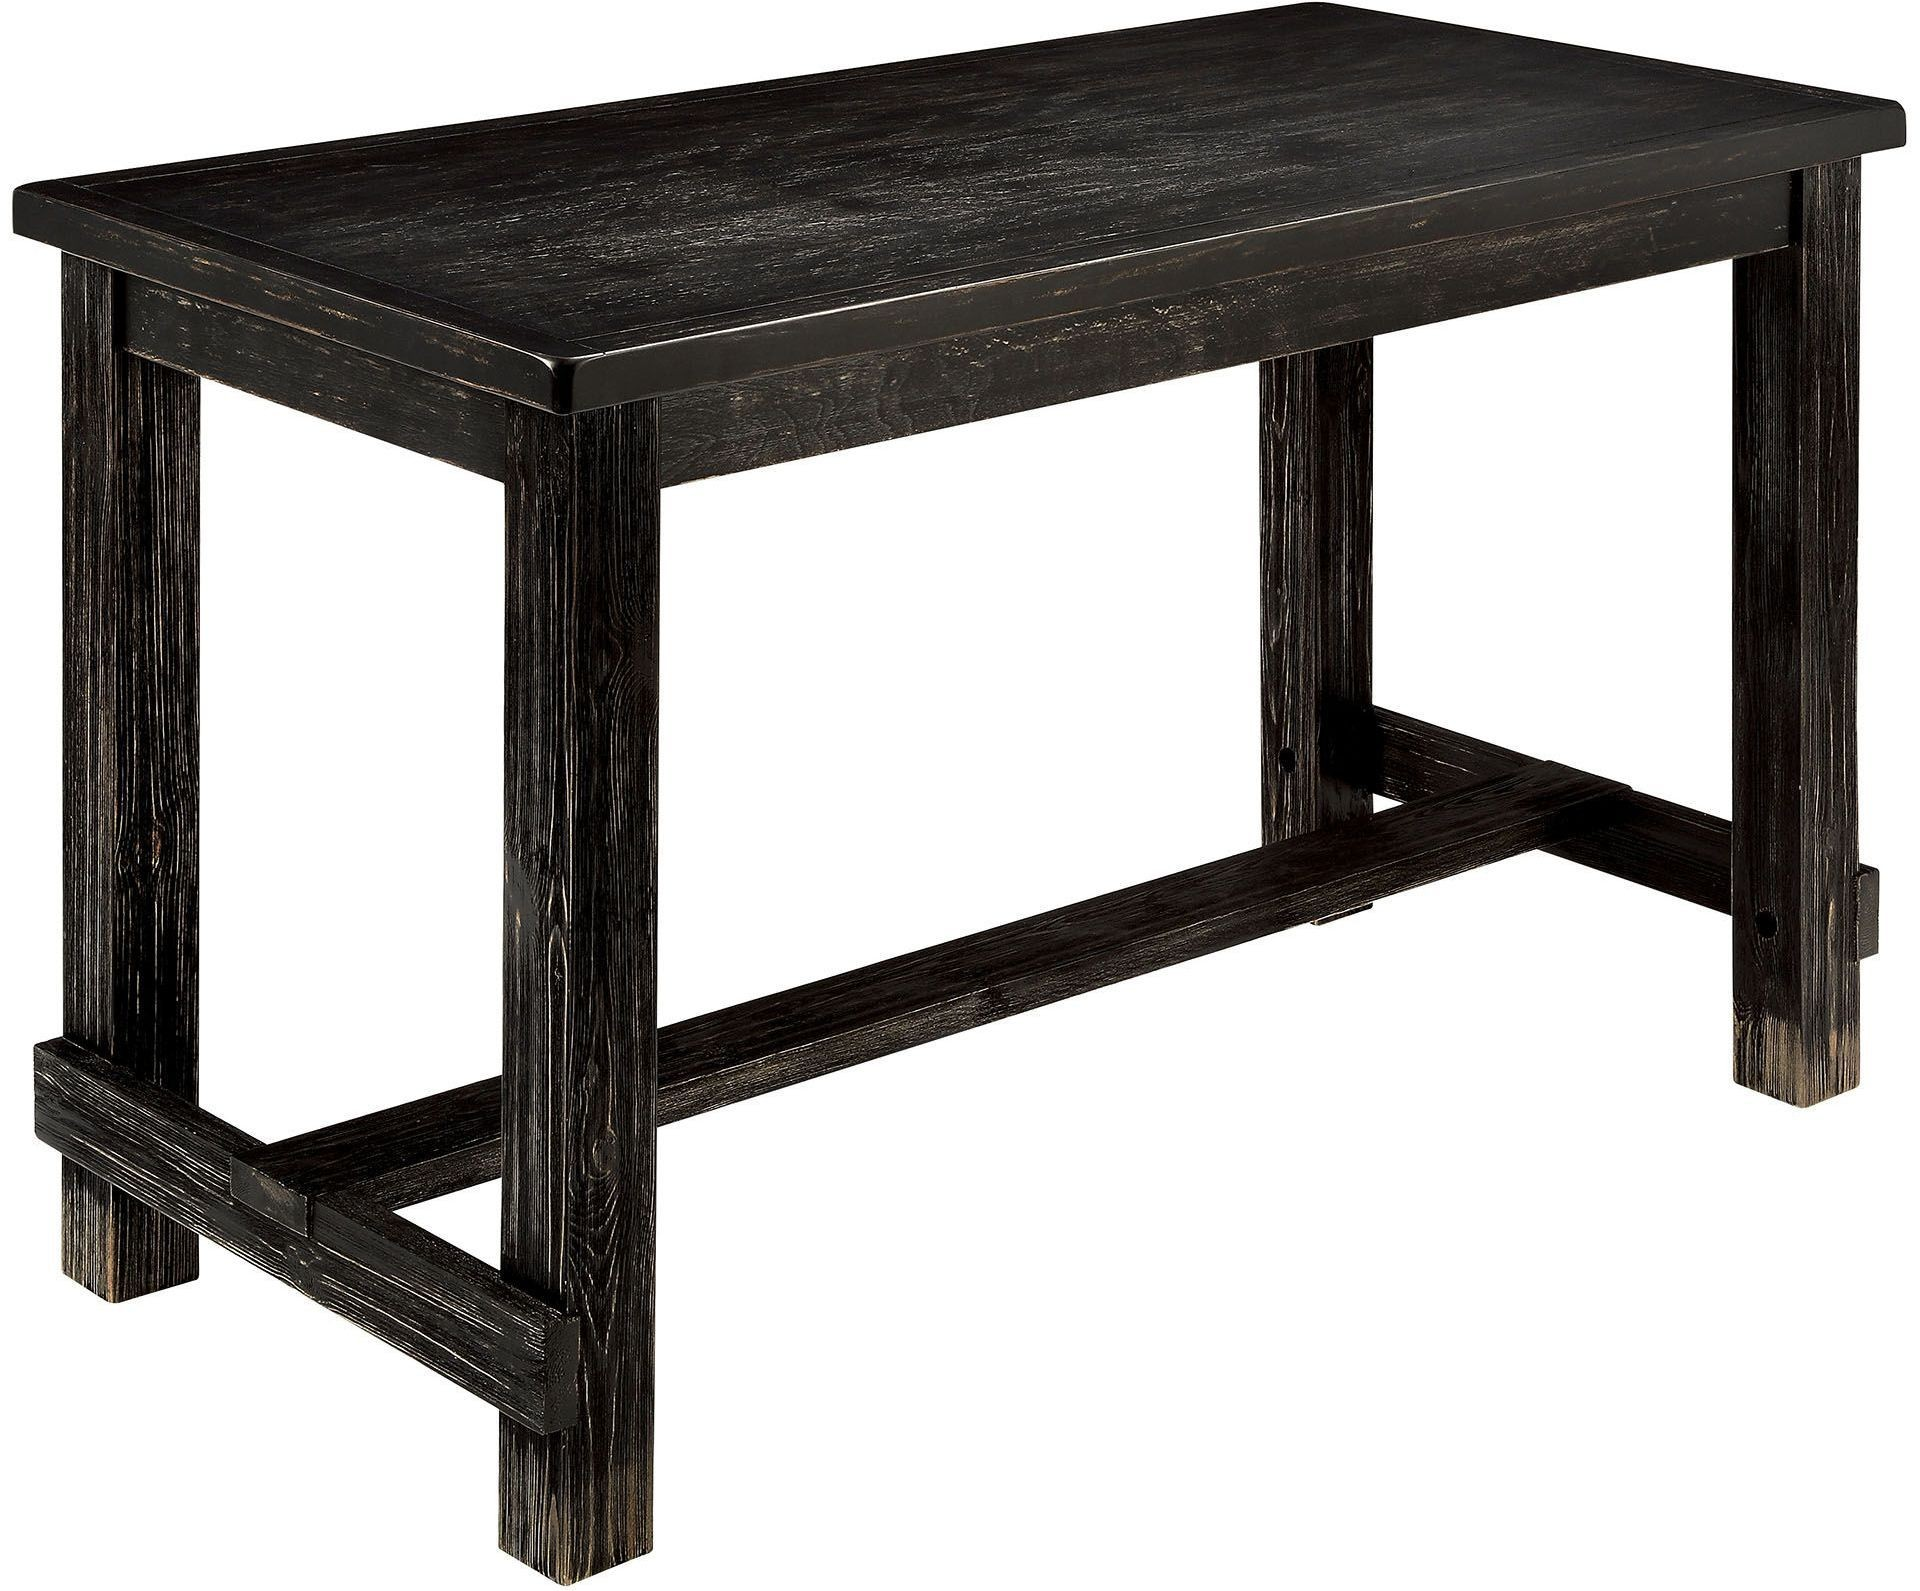 Sania Ii Antique Black Counter Height Dining Table  : cm3324bk pt wb from colemanfurniture.com size 1920 x 1591 jpeg 457kB